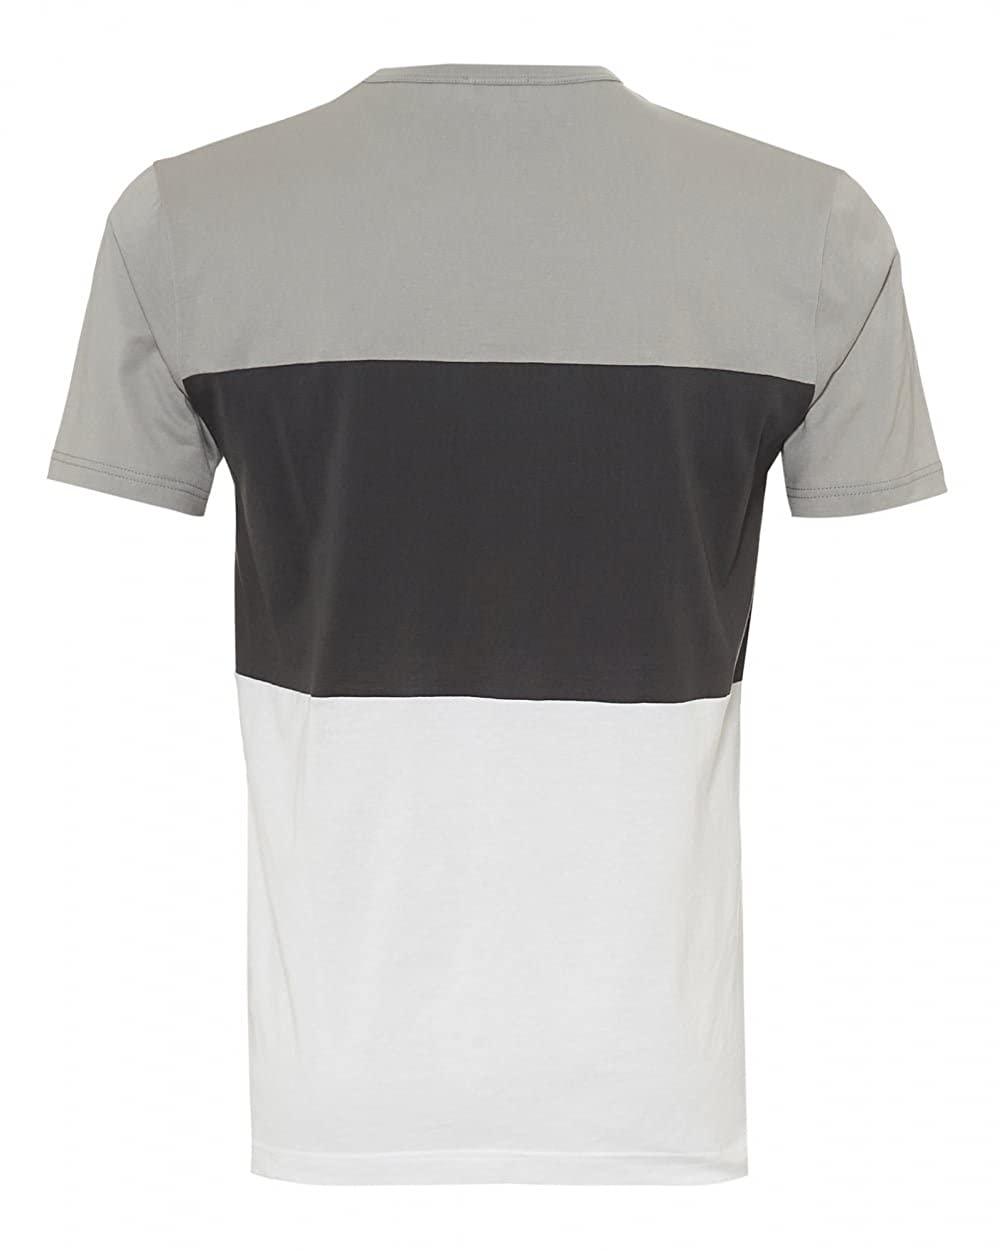 Sunspel - Camiseta - para Hombre Gris Gris Claro Medium: Amazon.es ...